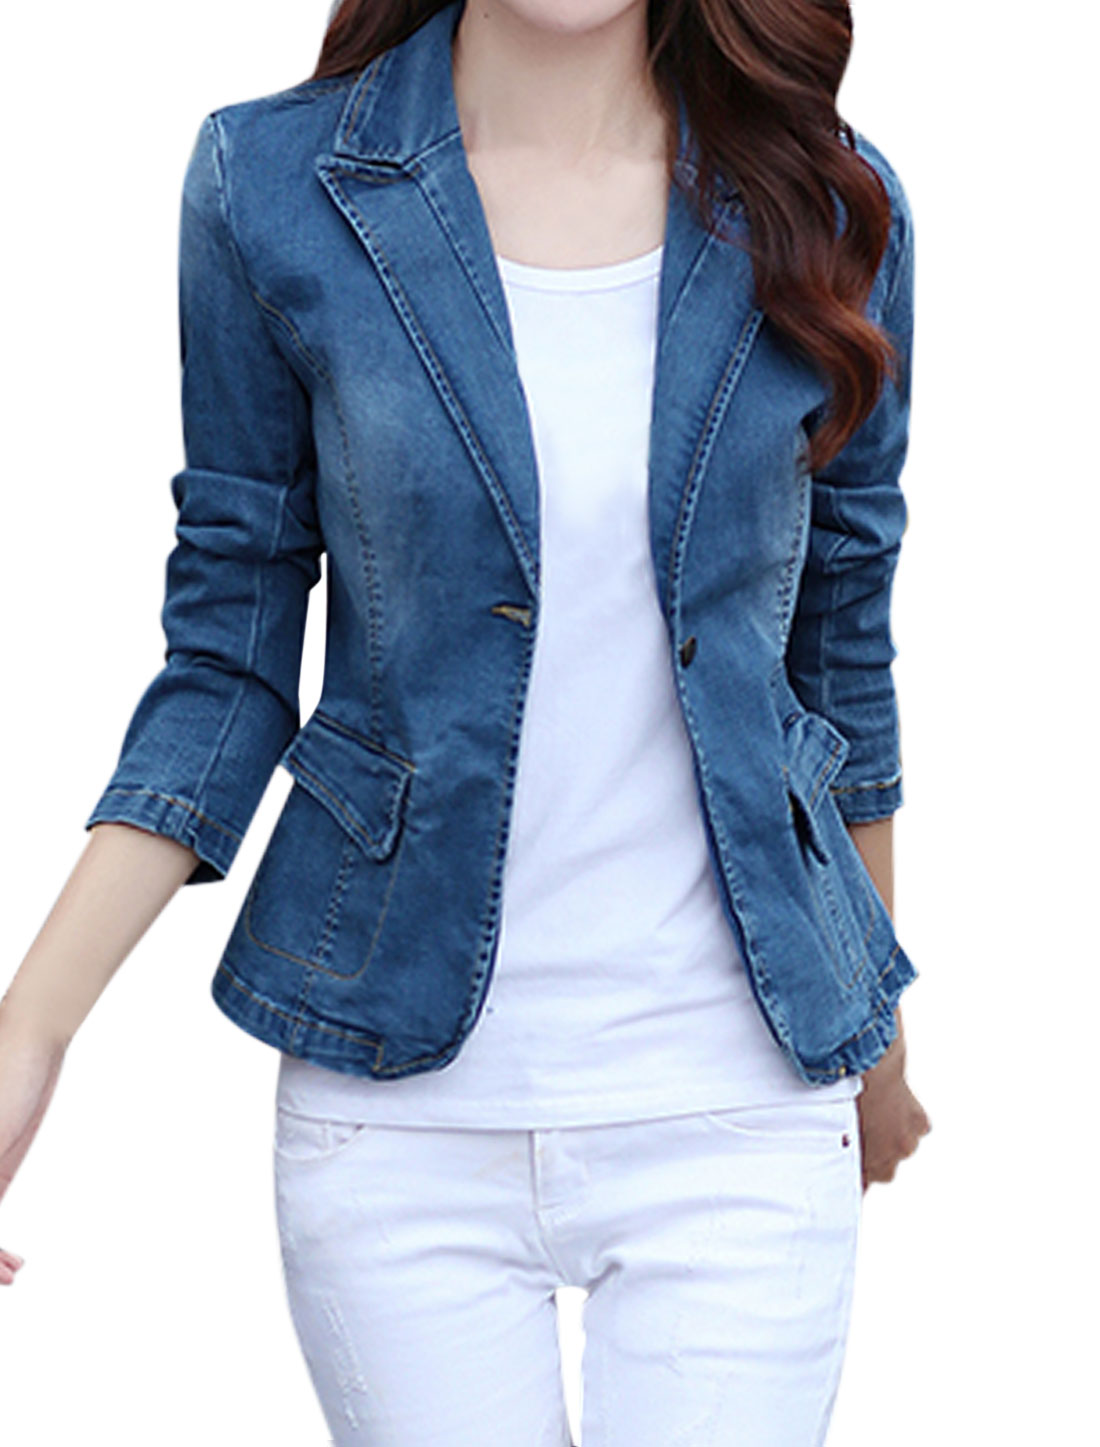 Women Peaked Lapel Long Sleeves Button Closure Jean Jacket Blue XS